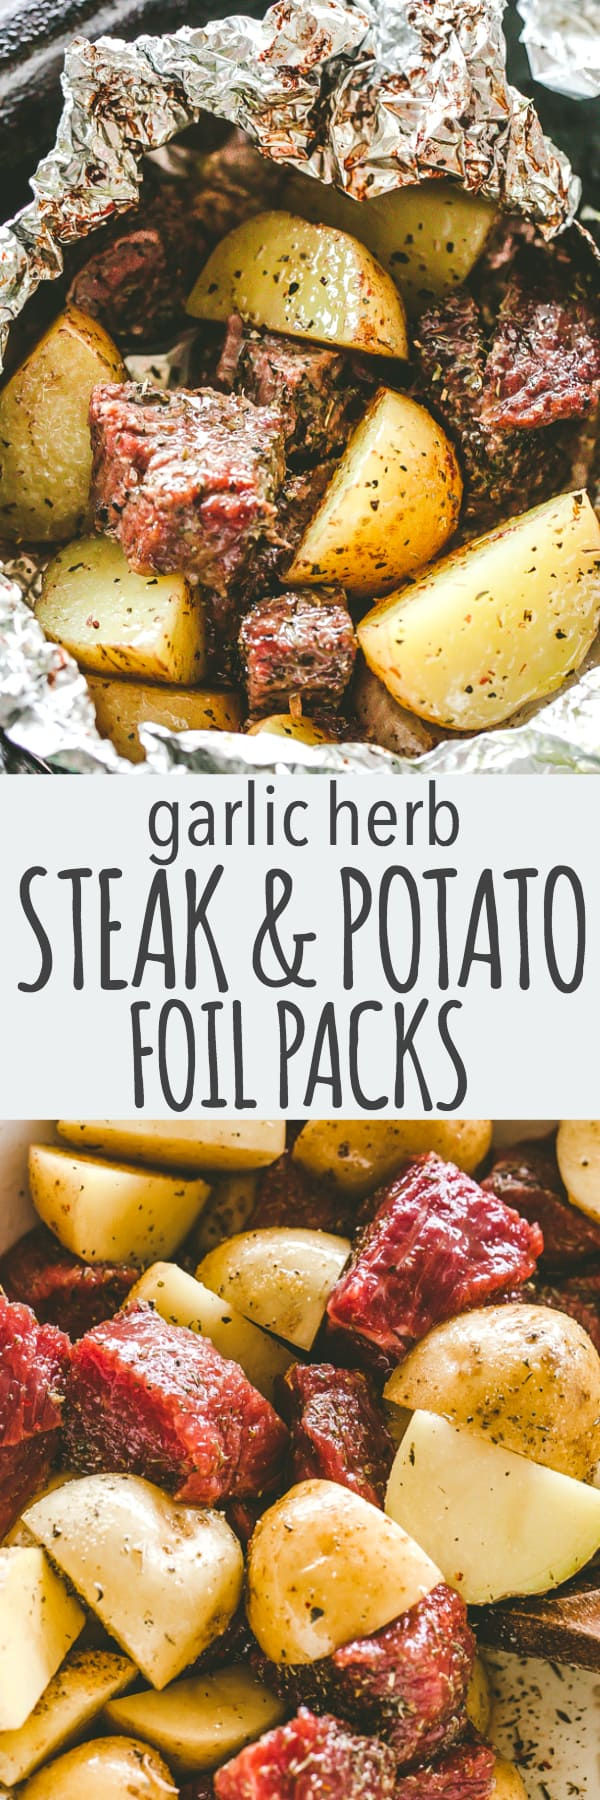 Garlic Herb Steak and Potato Foil Packs - DELICIOUS Steak and potatoes seasoned with garlic and herbs and cooked inside foil packets. They can be cooked on the grill OR in the oven, and are perfect for a family dinner or a backyard get-together.